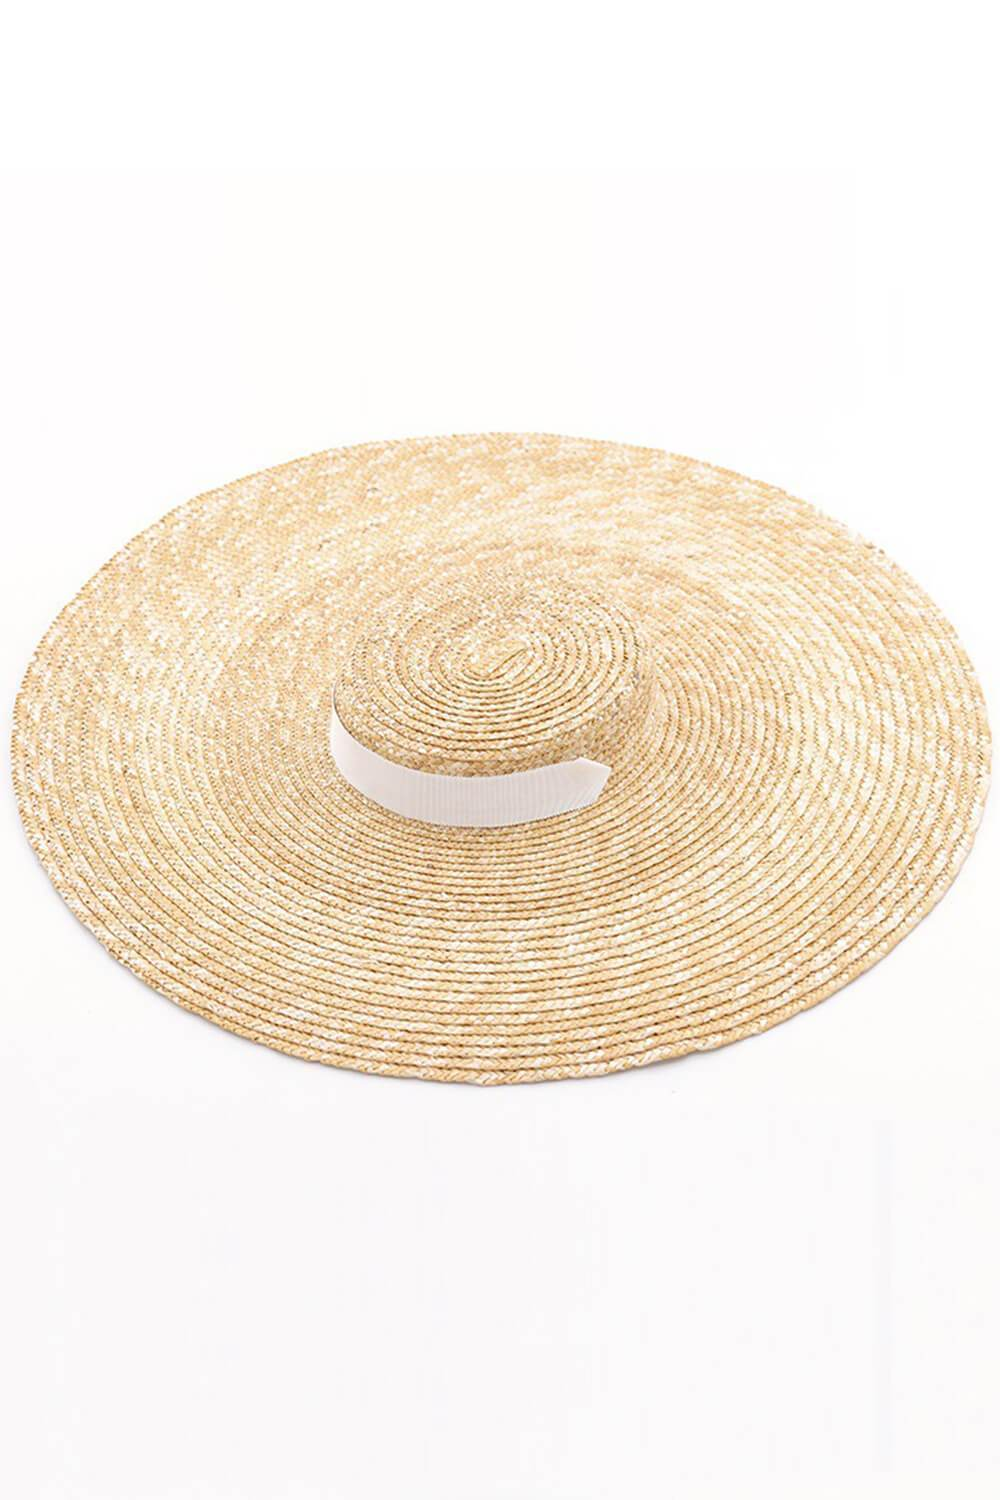 Wheat Straw Extra-Wide Brim Boater With White Chin Tie